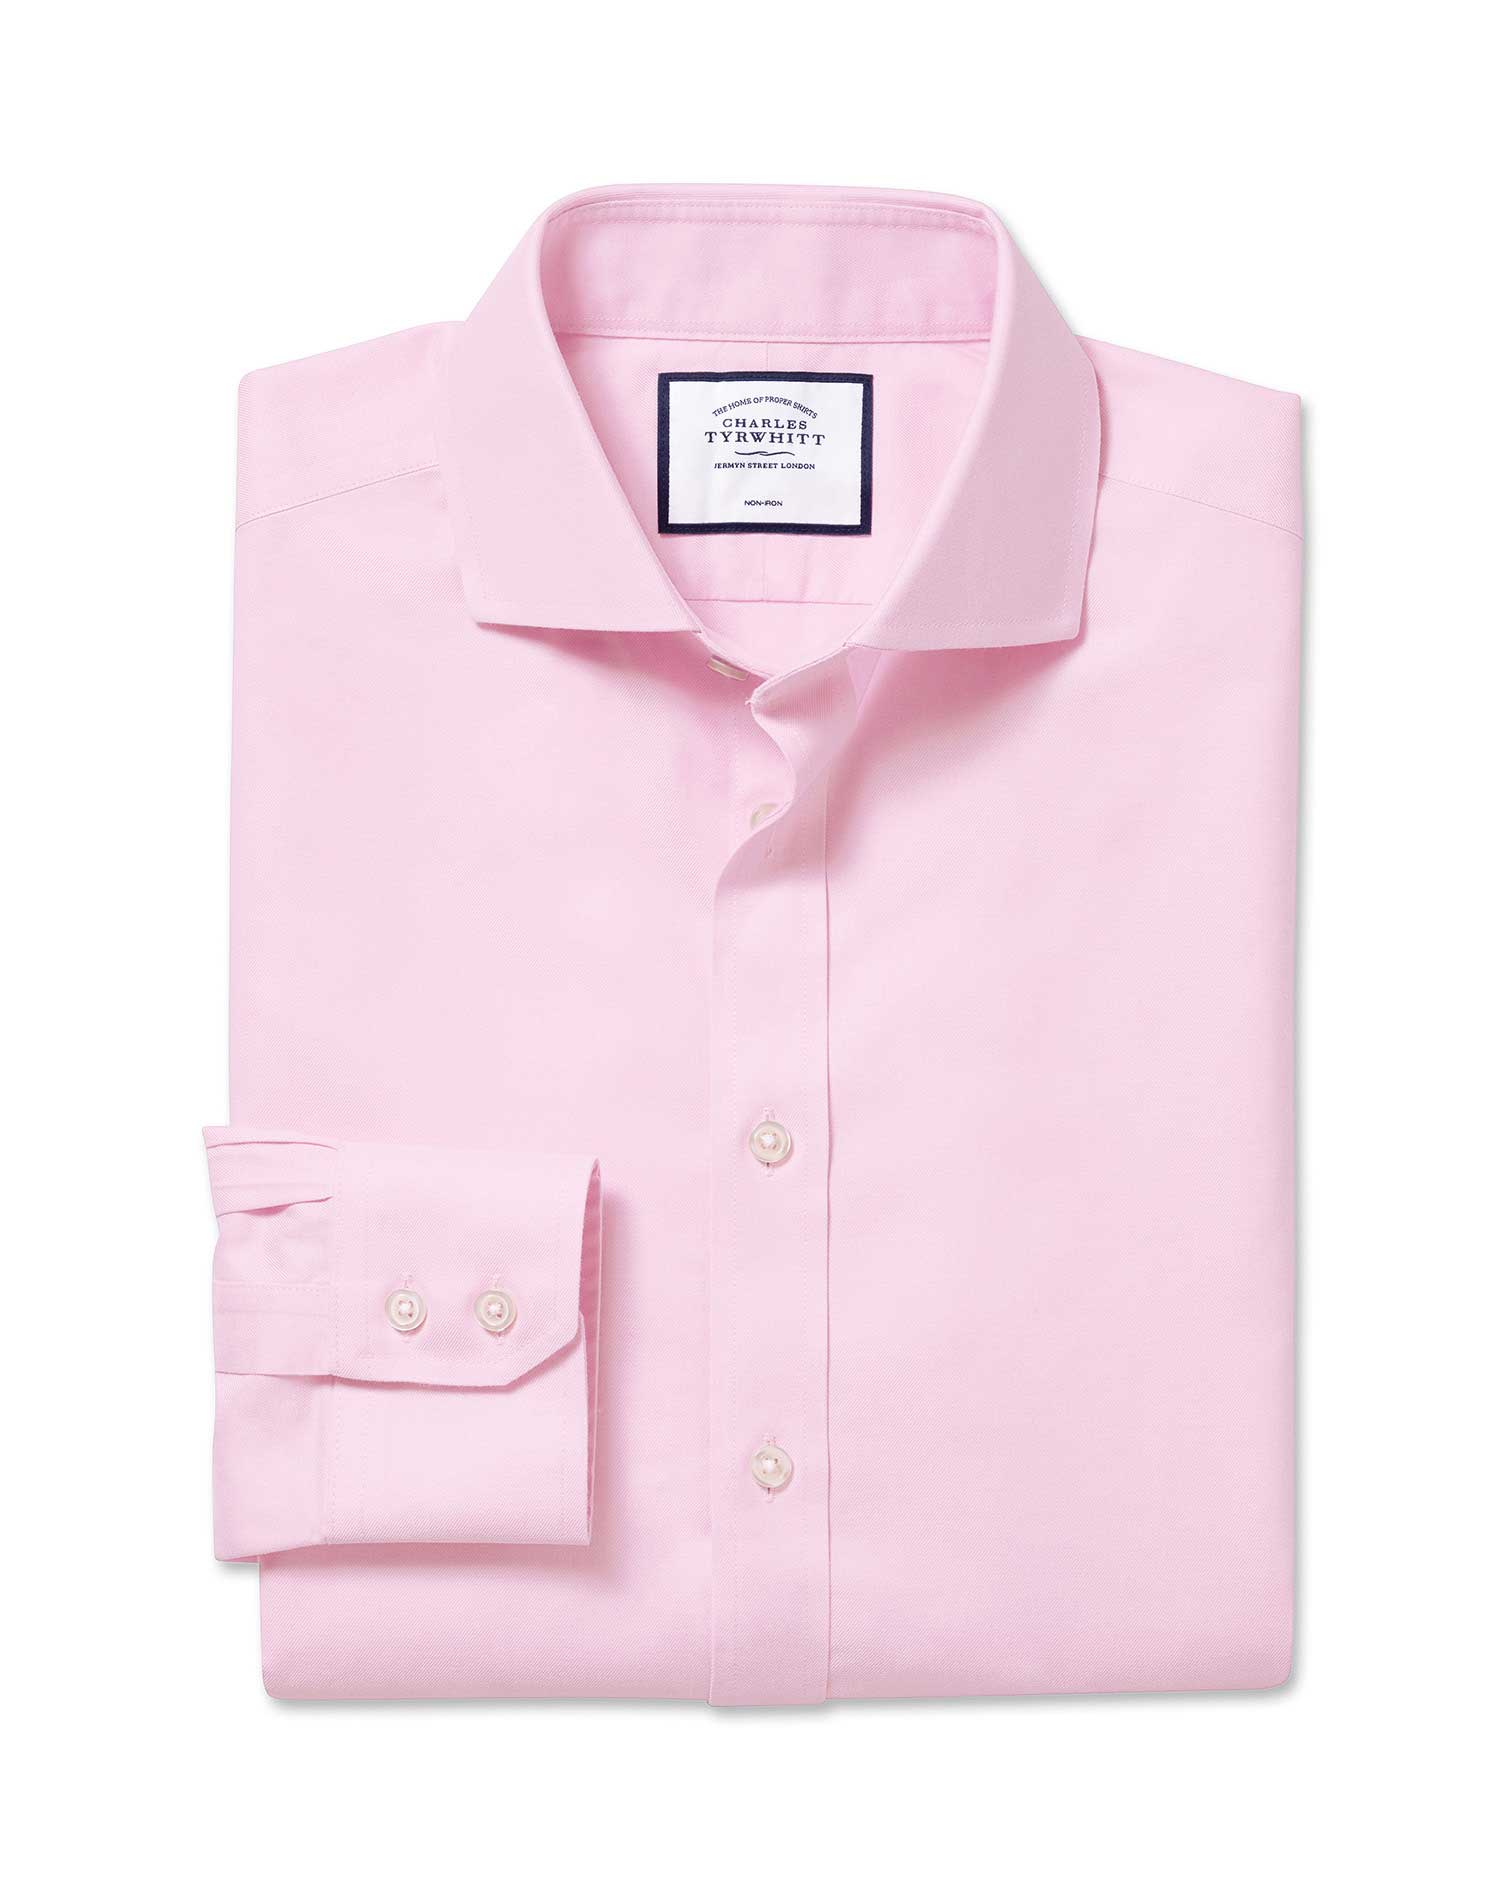 Super Slim Fit Pink Non-Iron Twill Cotton Formal Shirt Single Cuff Size 15/32 by Charles Tyrwhitt